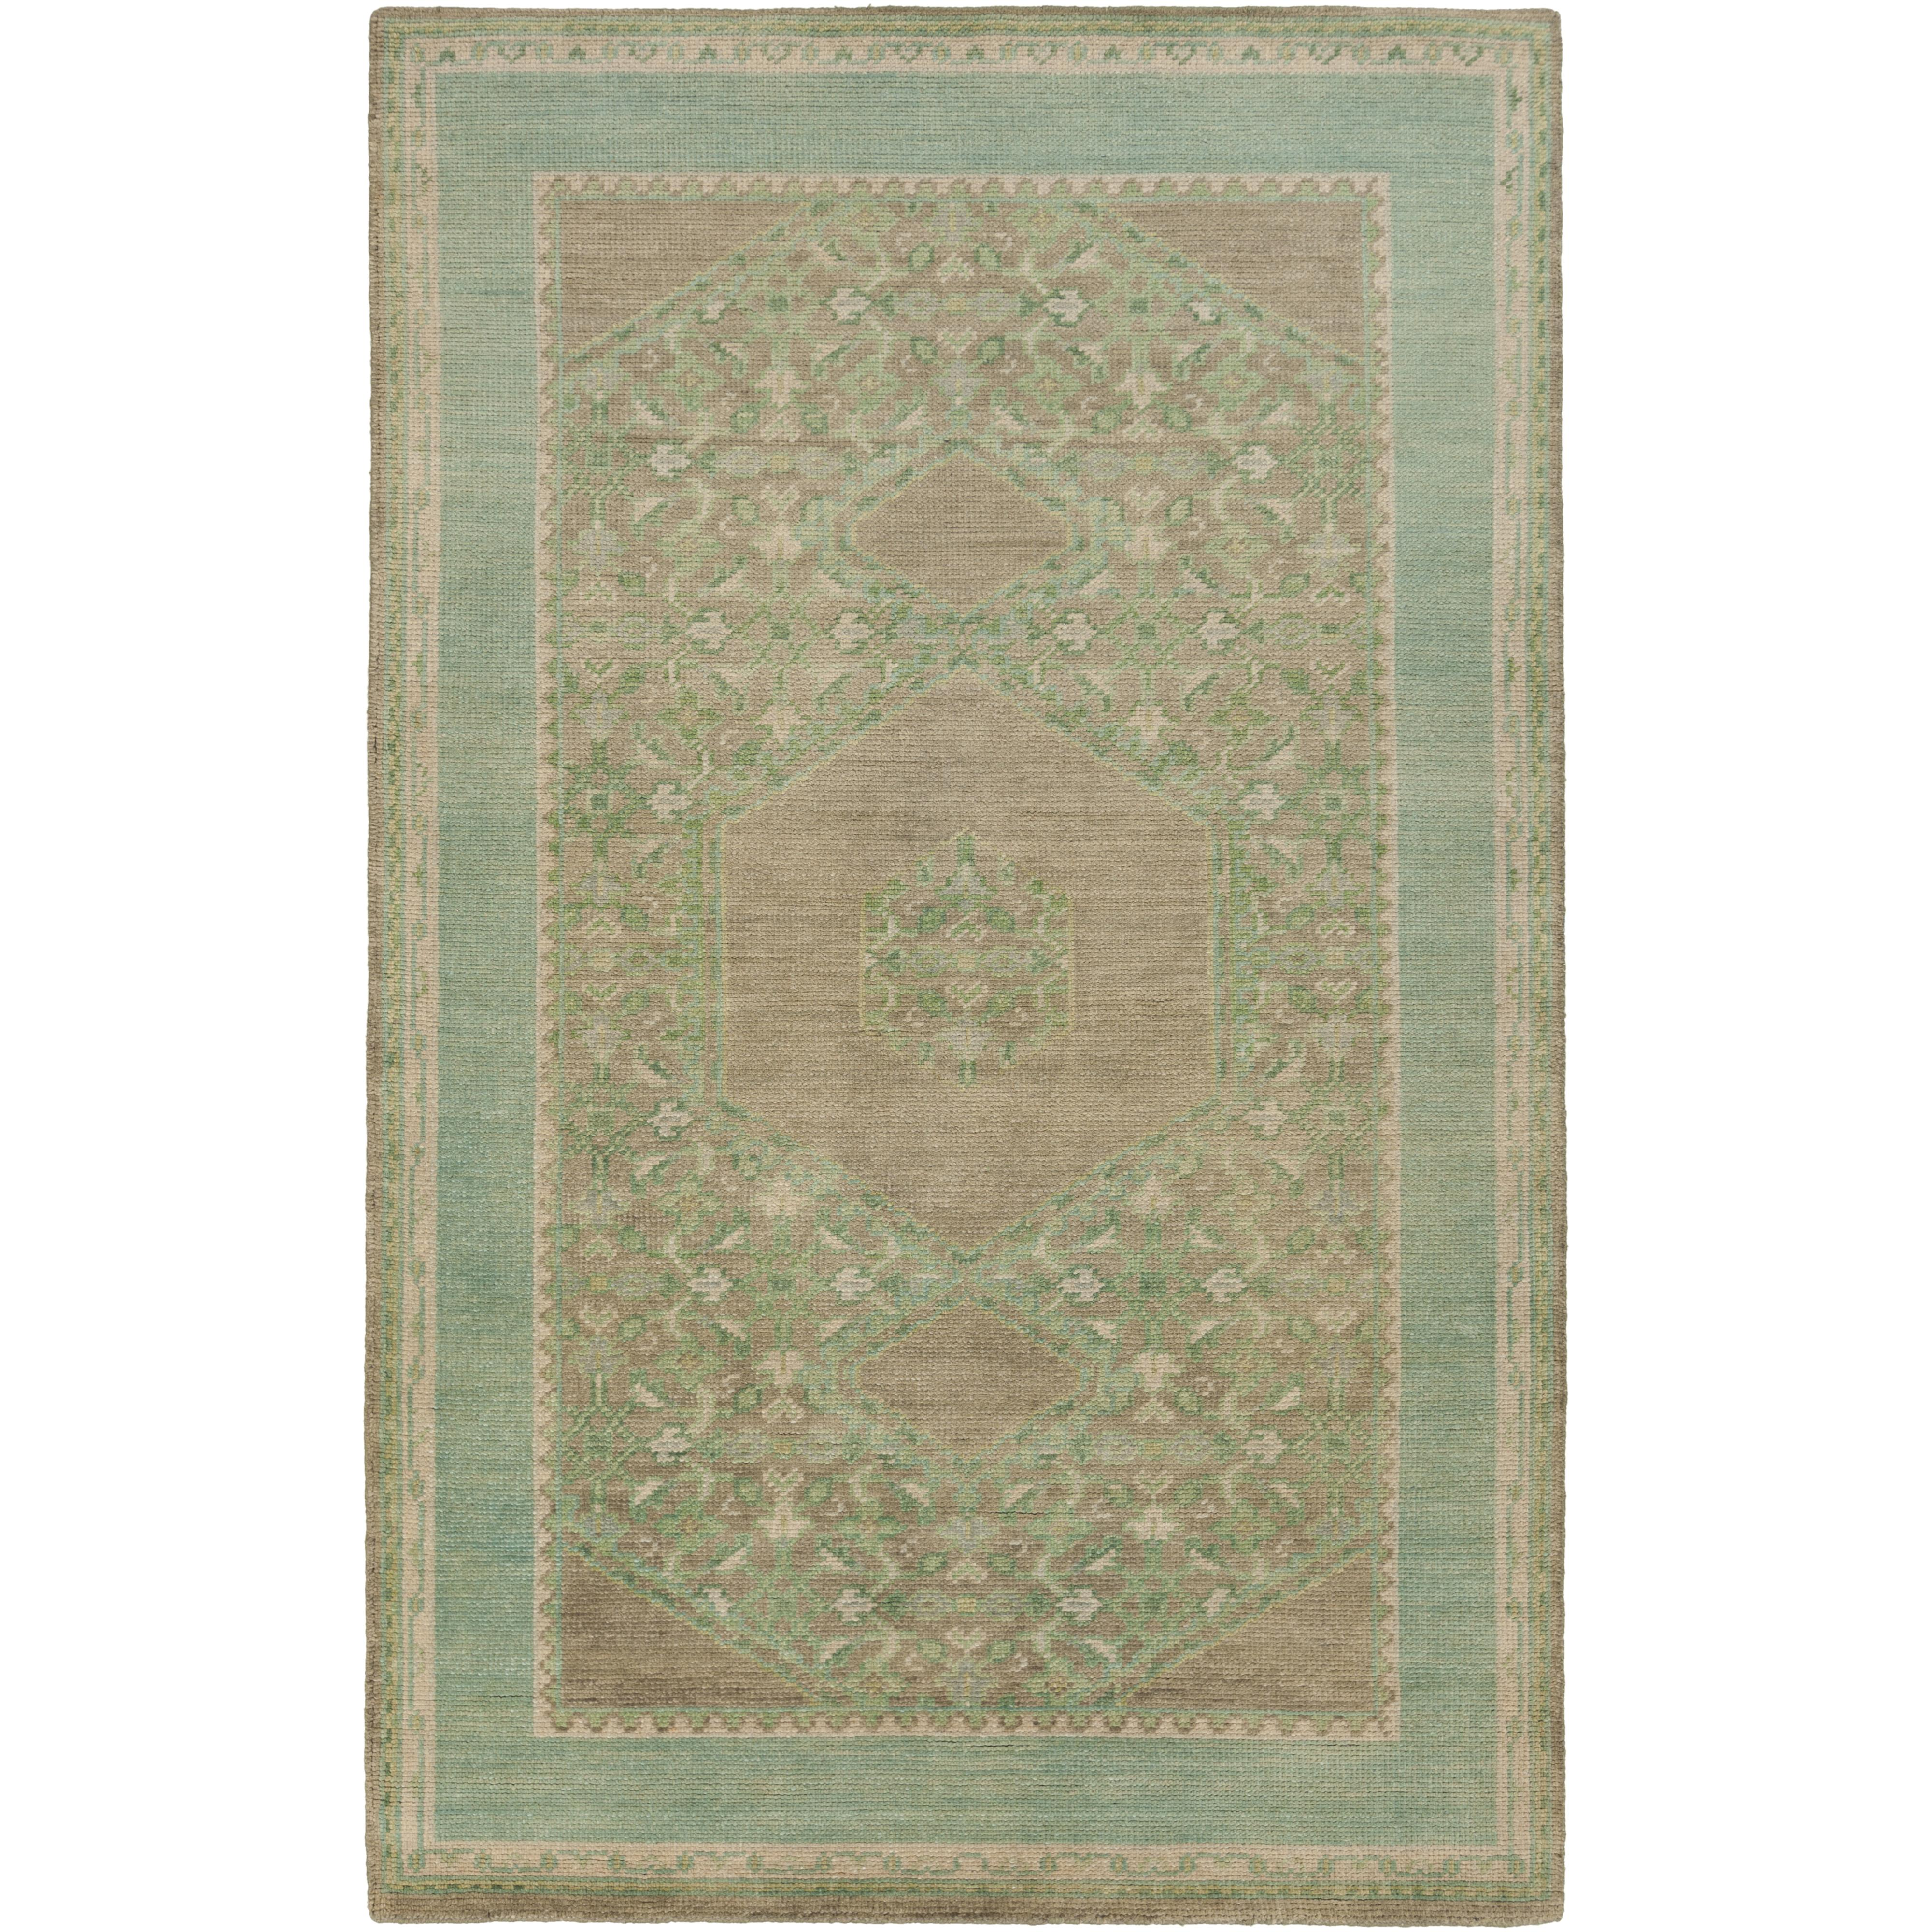 "Surya Rugs Haven 5'6"" x 8'6"" - Item Number: HVN1219-5686"